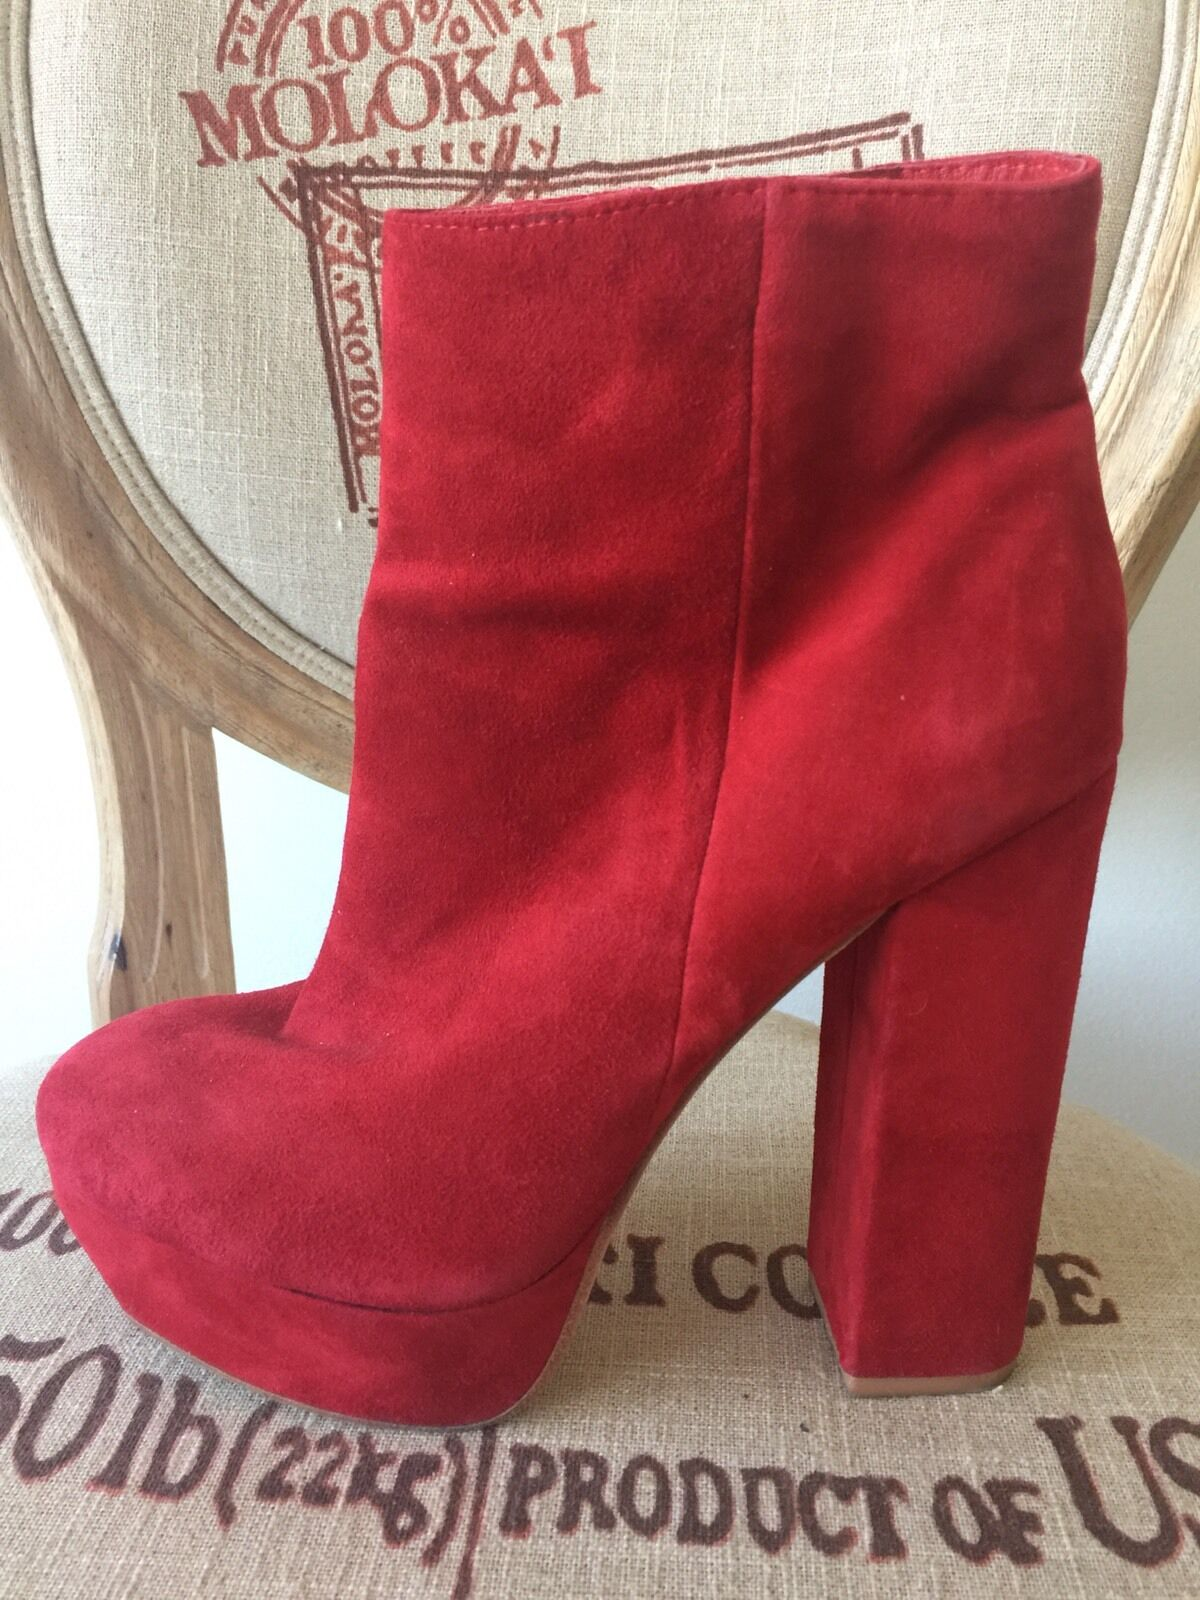 Dolce Vita Red Stylish Leather Suede Shoes Booties Boots Fall Fashion Size 40